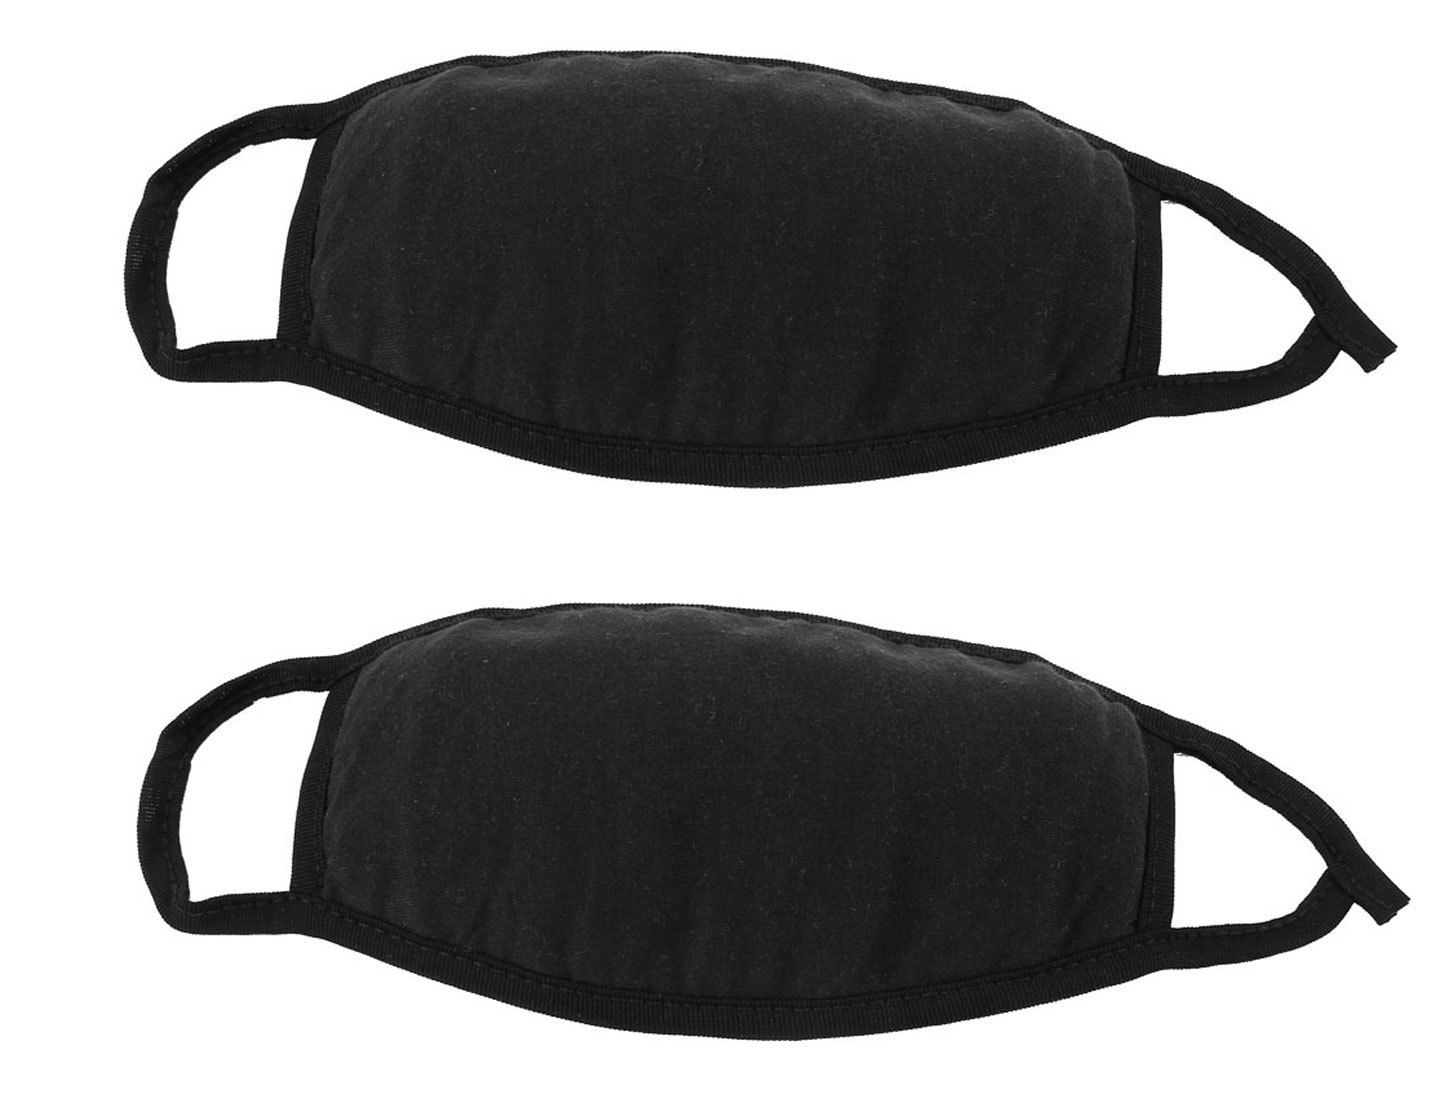 Unisex Outdoor Anti-Dust Mouth Nose Muffle Earloop Face Mask Black 2Pcs